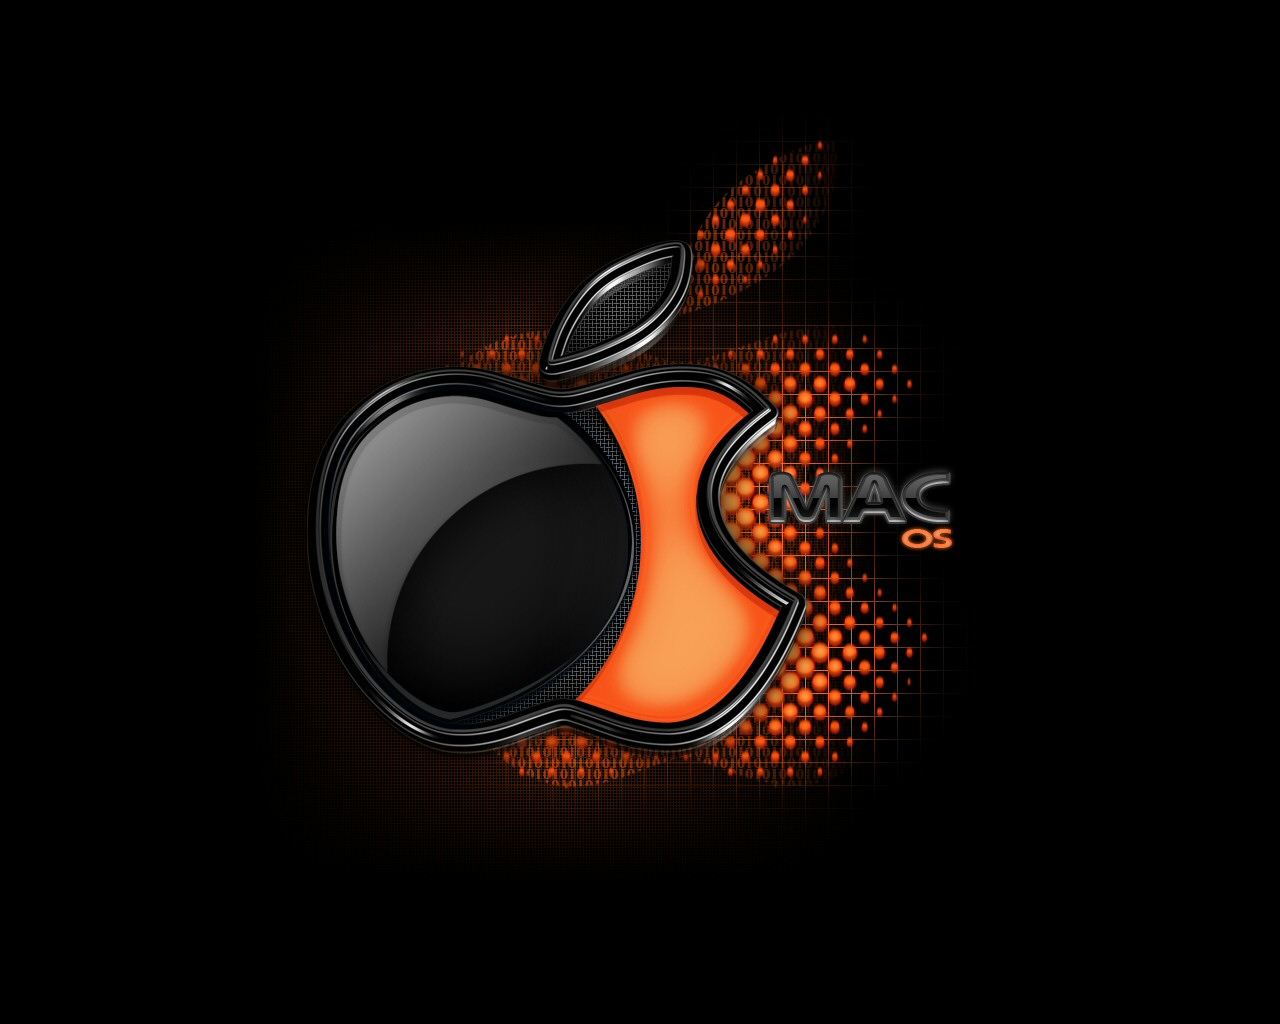 http://1.bp.blogspot.com/-9BXvyxPgdYM/UEigd92HUCI/AAAAAAAAEso/PP03gAjiuic/s1600/hd-apple-mac-wallpapers-1.jpg